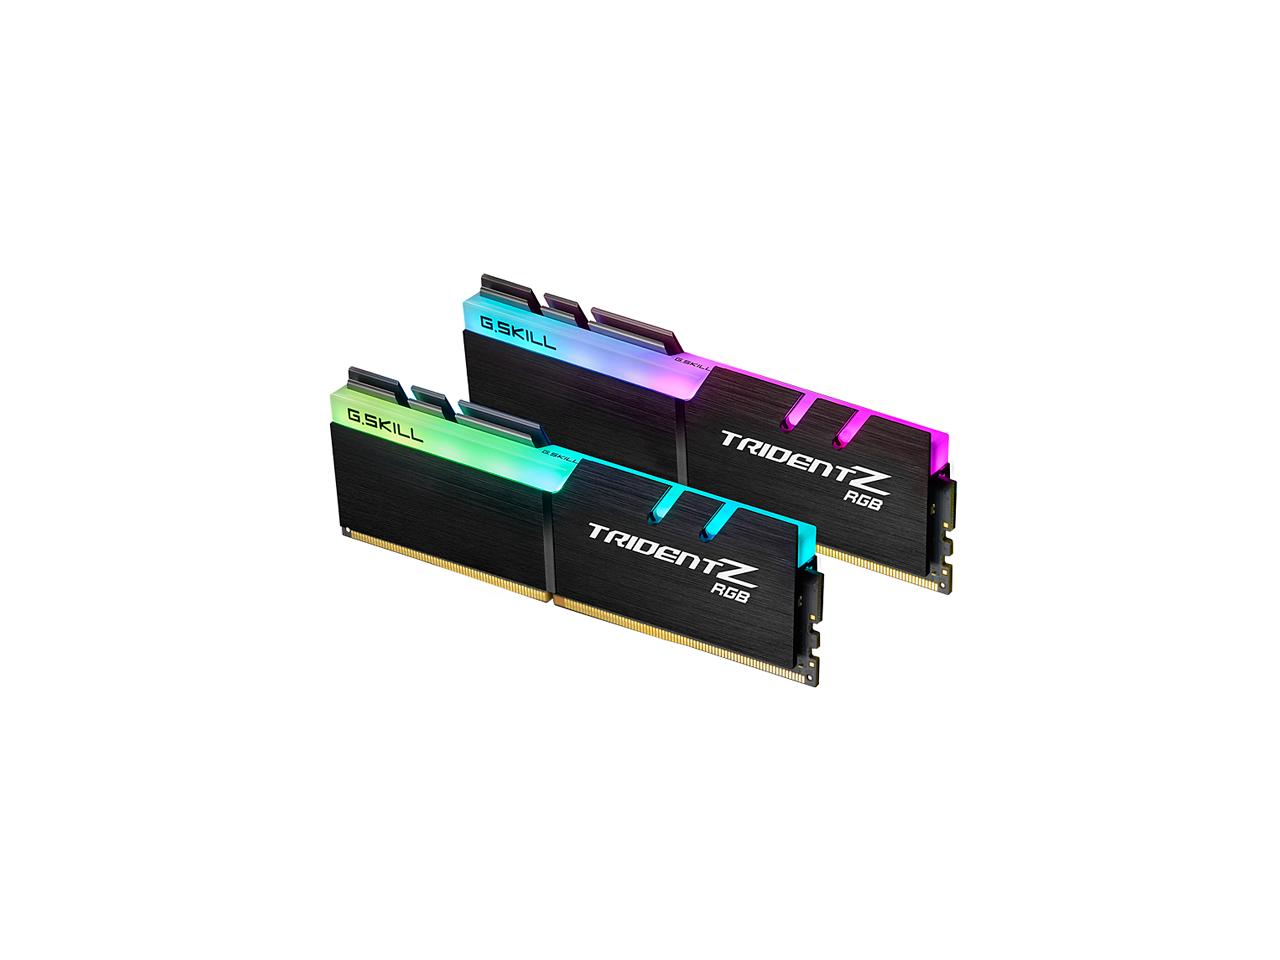 G.SKILL TridentZ RGB Series 16GB (2 x 8GB) 288-Pin DDR 3000MHz (PC4 24000) Desktop Memory Model F4-3000C15D-16GTZR